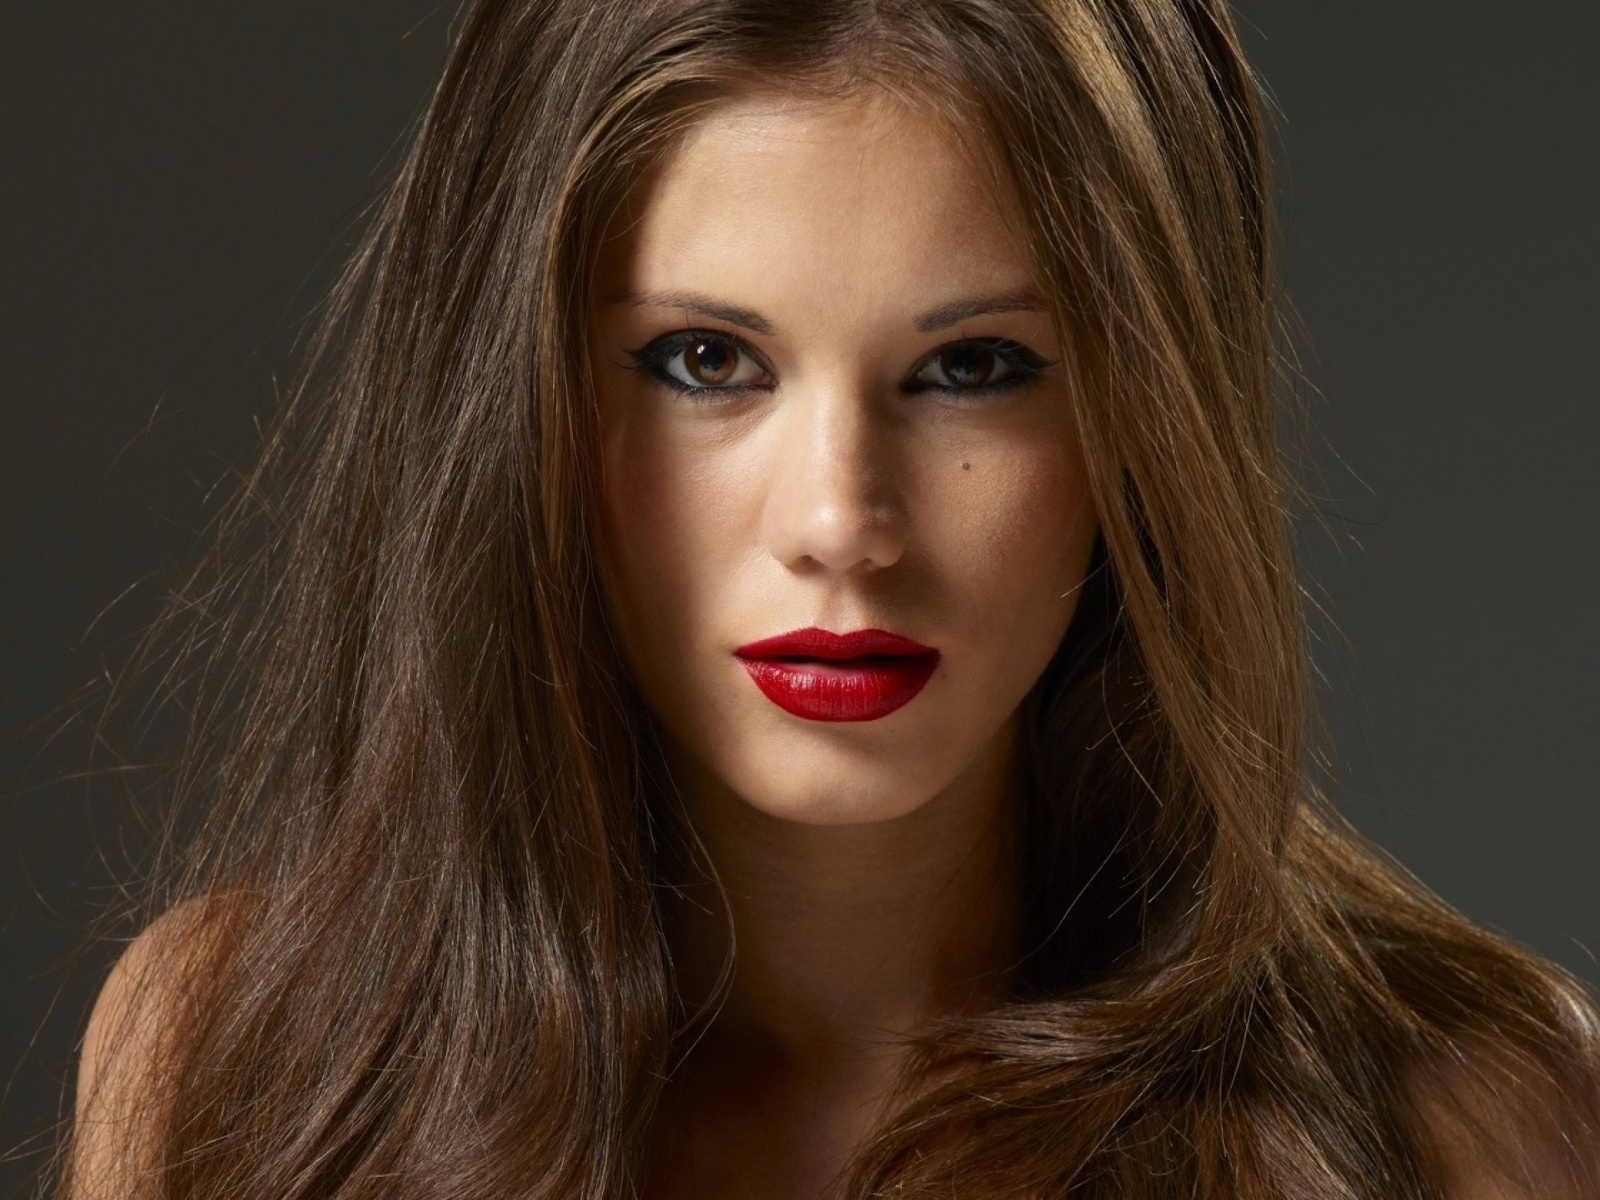 1600x1200 Hot Brunette with Red Lips desktop PC and Mac wallpaper